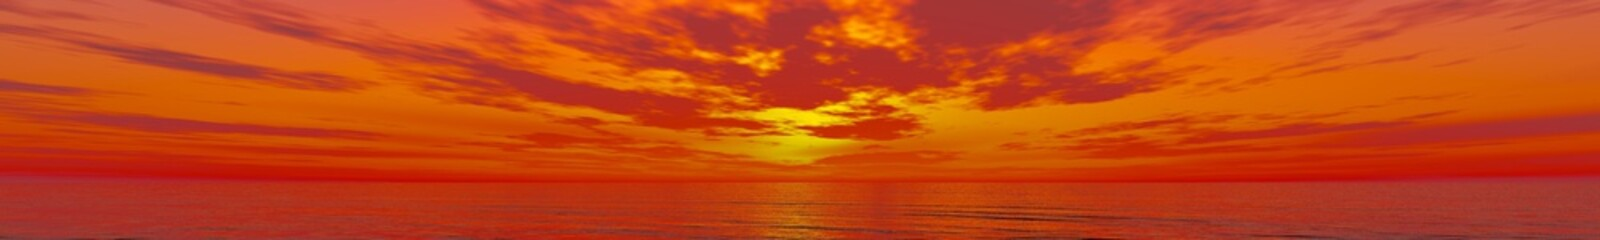 panorama of sunset on the ocean, the sunrise over the sea, banner